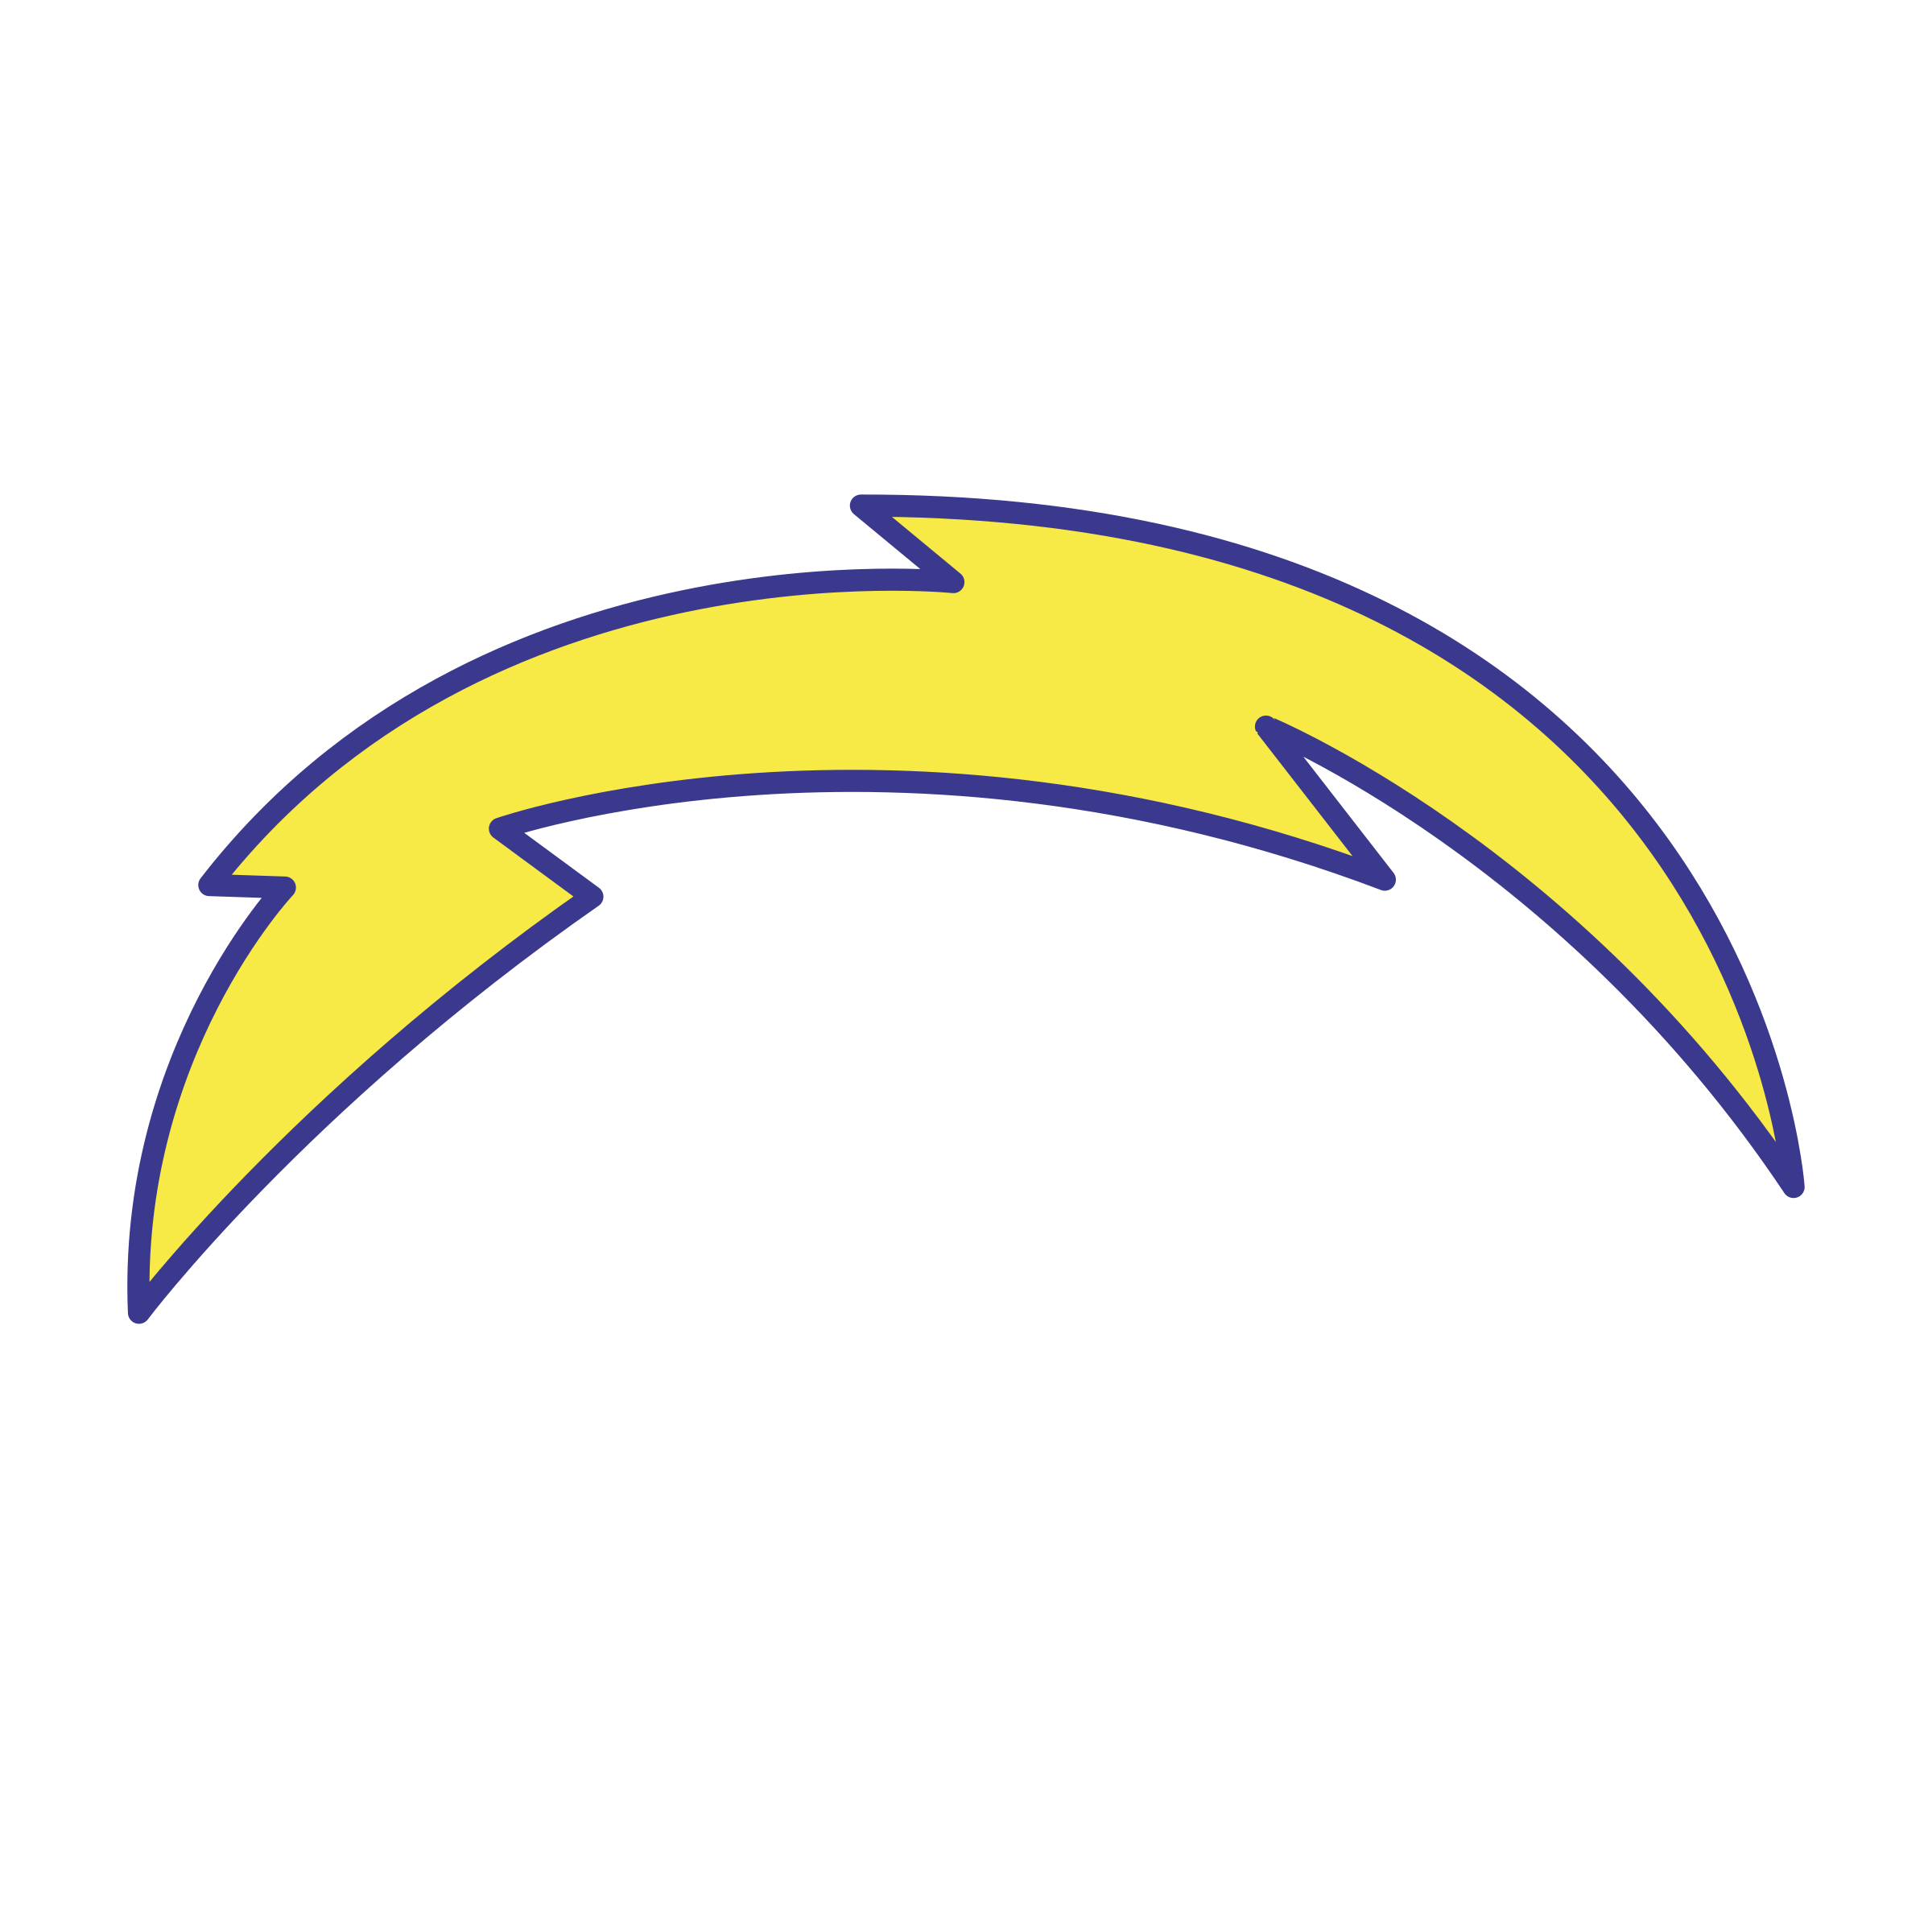 San Diego Chargers Logo PNG Transparent & SVG Vector.